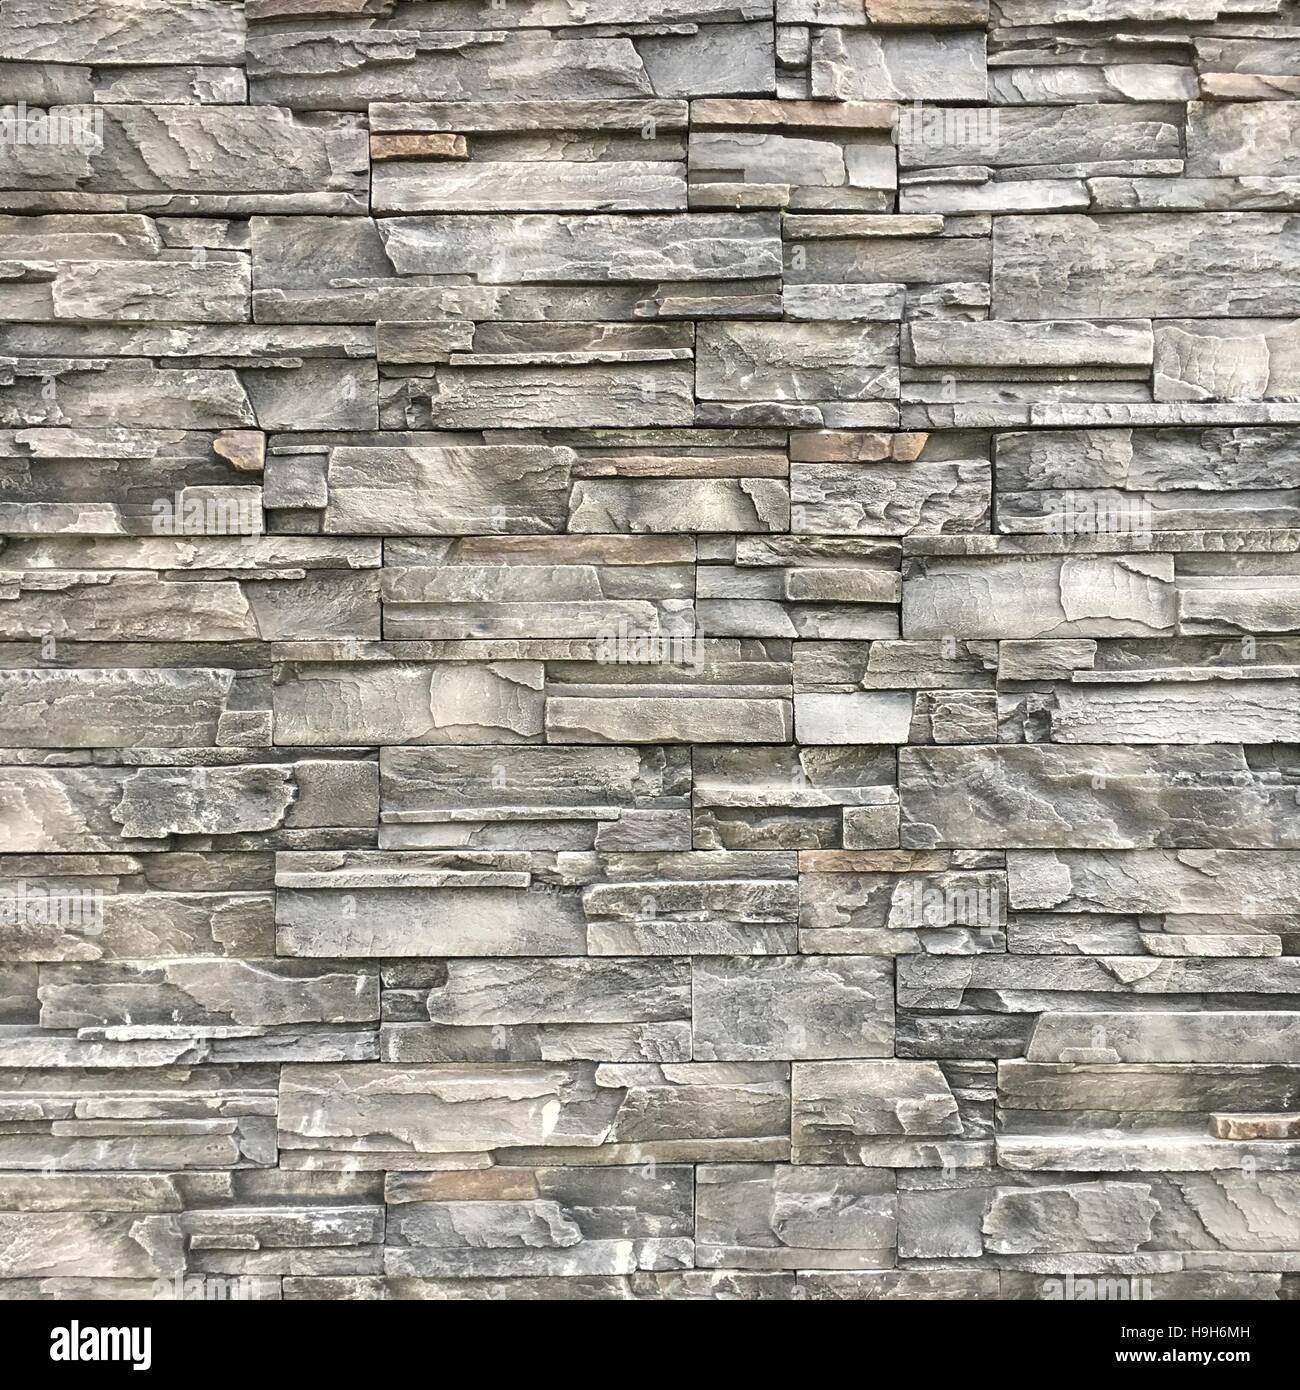 Wall Stone Background Texture Rock Brick Pattern Home Stock Photo Royalty Free Image